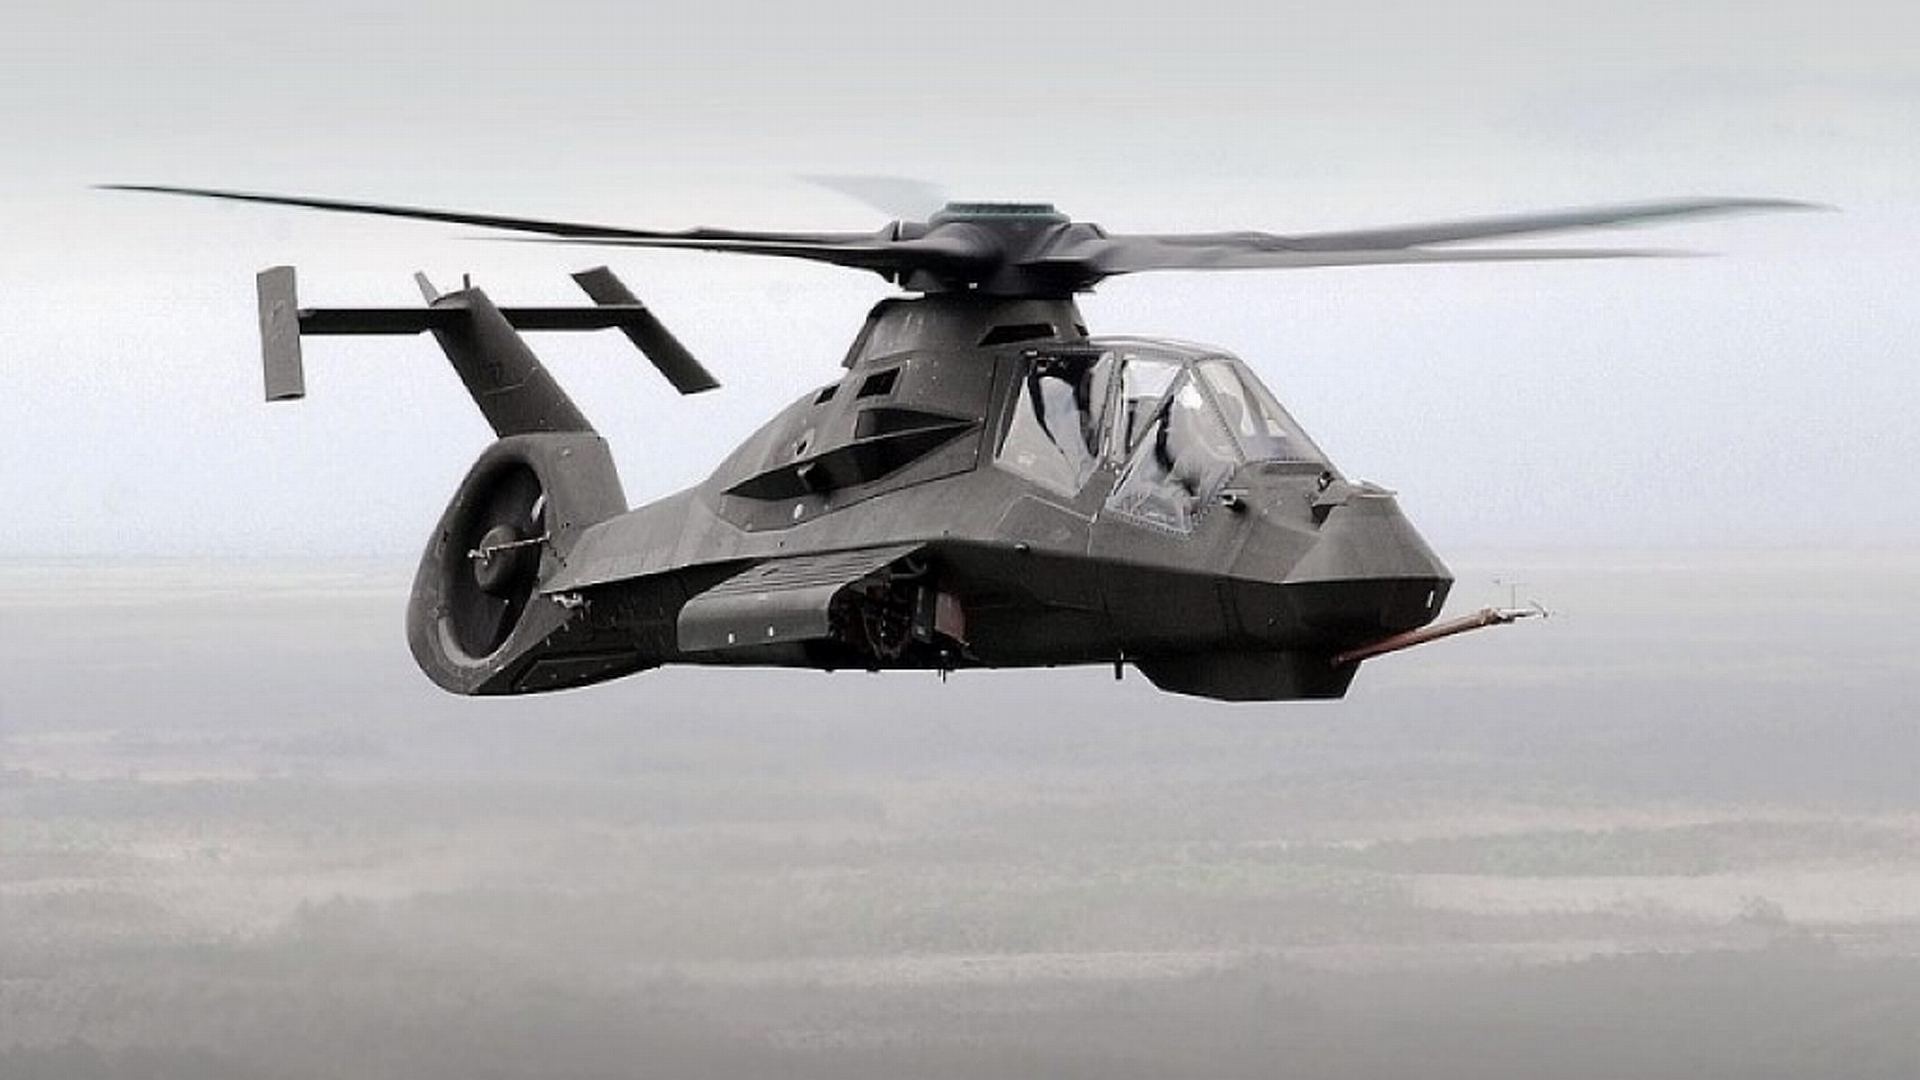 Boeing-Sikorsky RAH-66 Comanche Full HD Wallpaper and ...